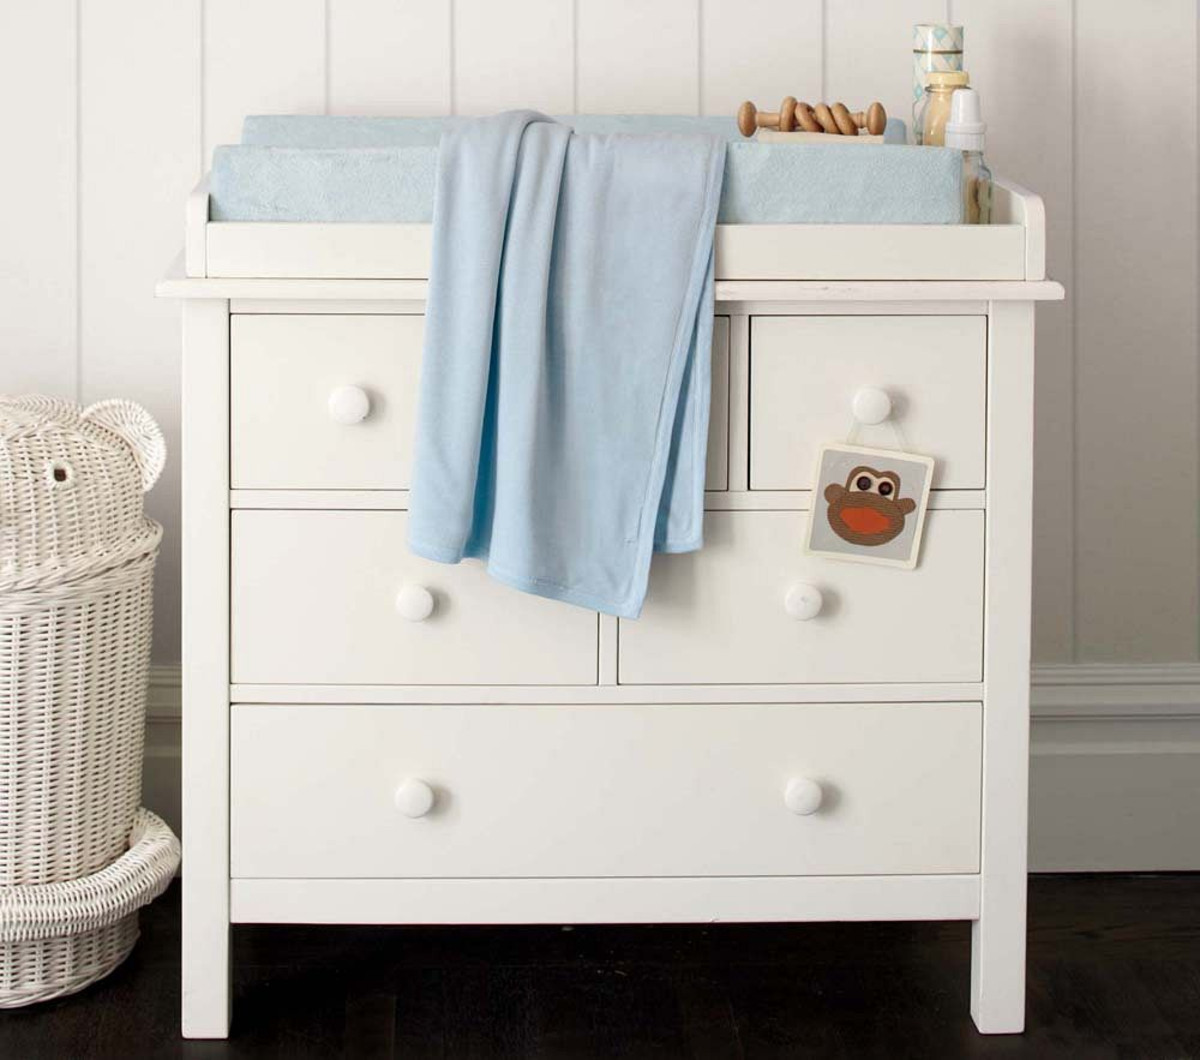 Picture of: Nice Changing Table Topper for Dresser